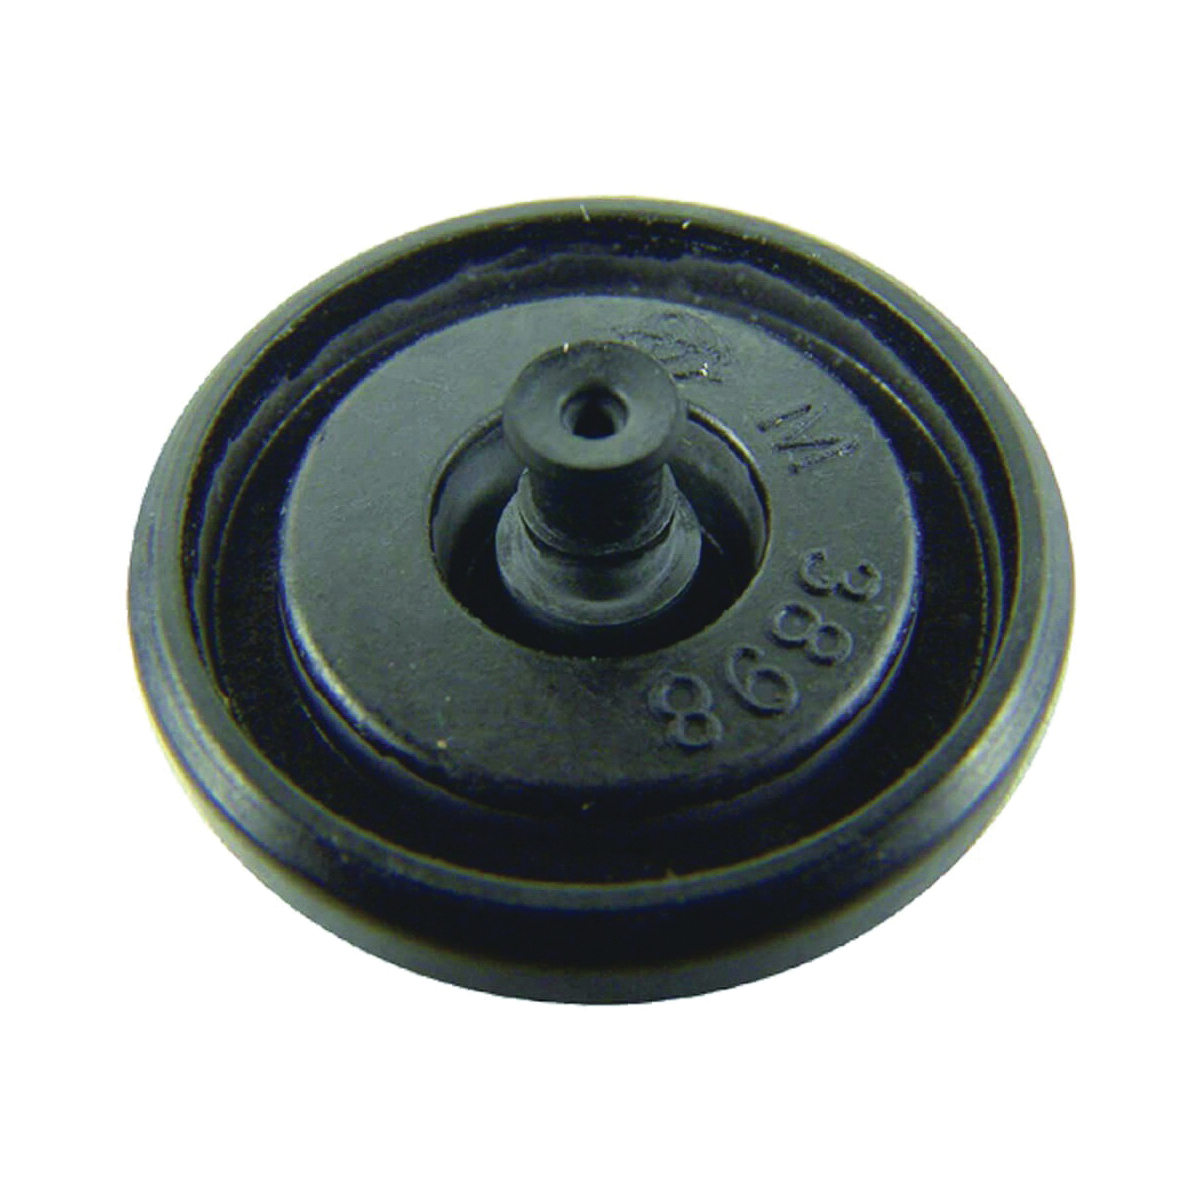 Picture of Danco 80141 Diaphragm, Rubber, For: Models #100, #200, #300A and #400A Ballcocks